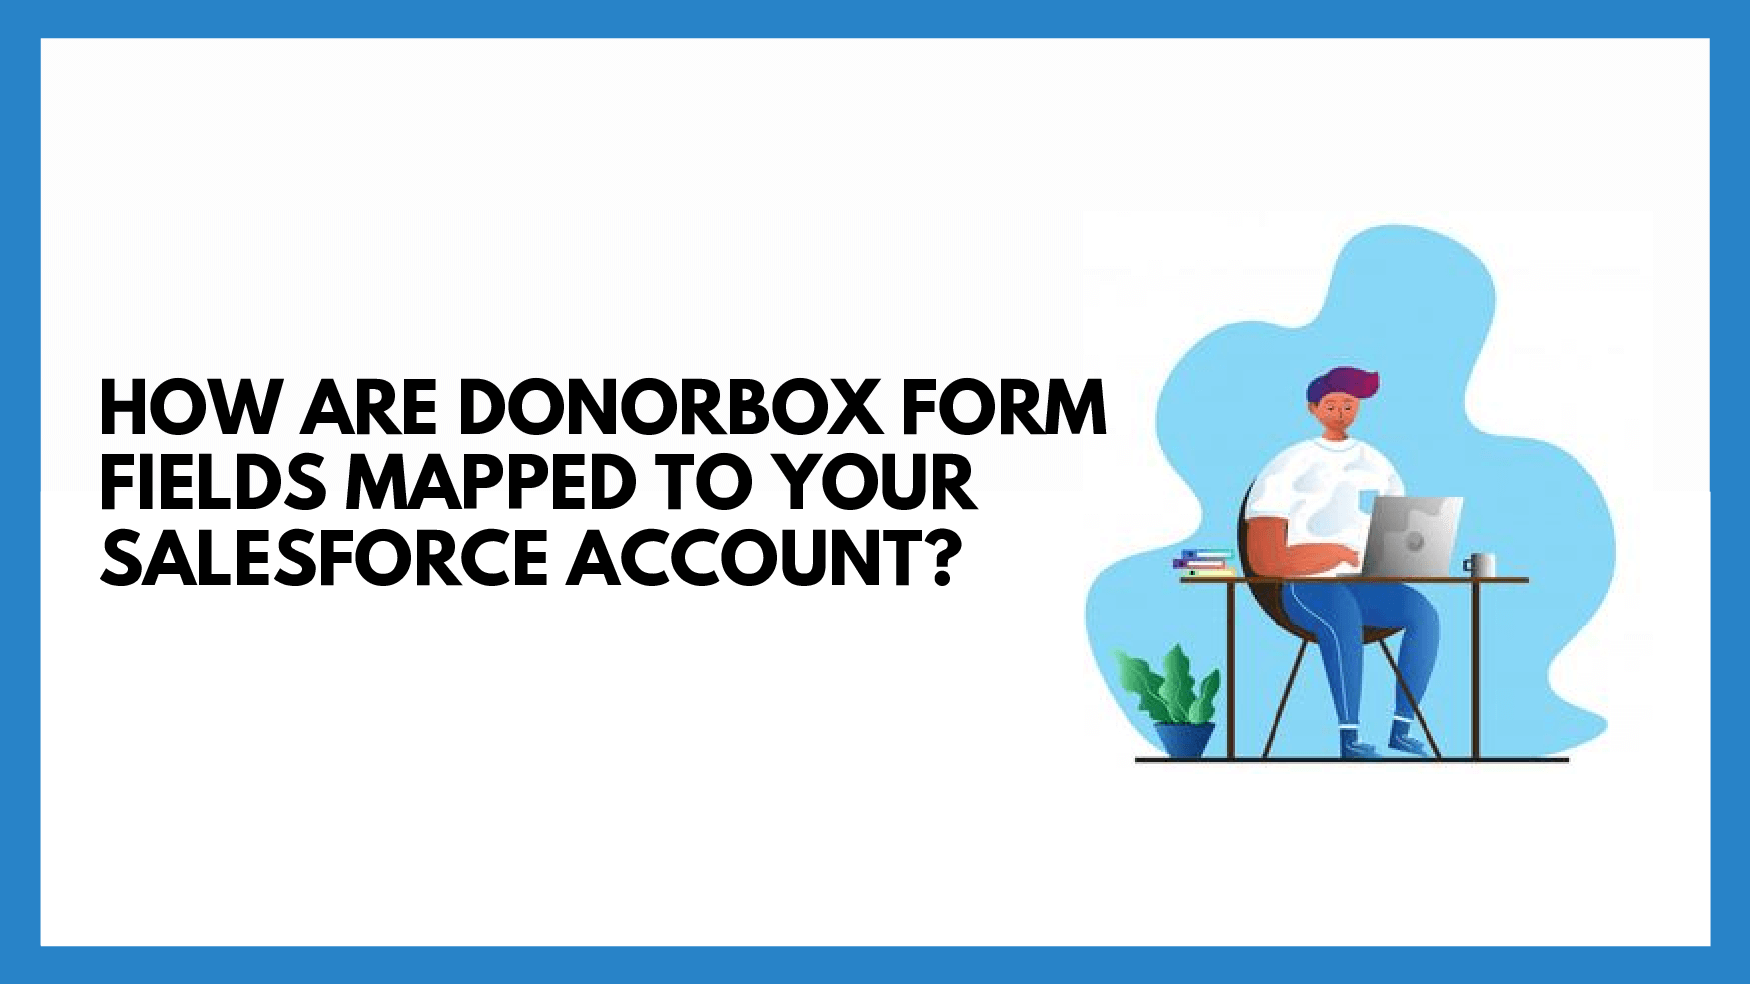 How are Donorbox form fields mapped to your Salesforce account?